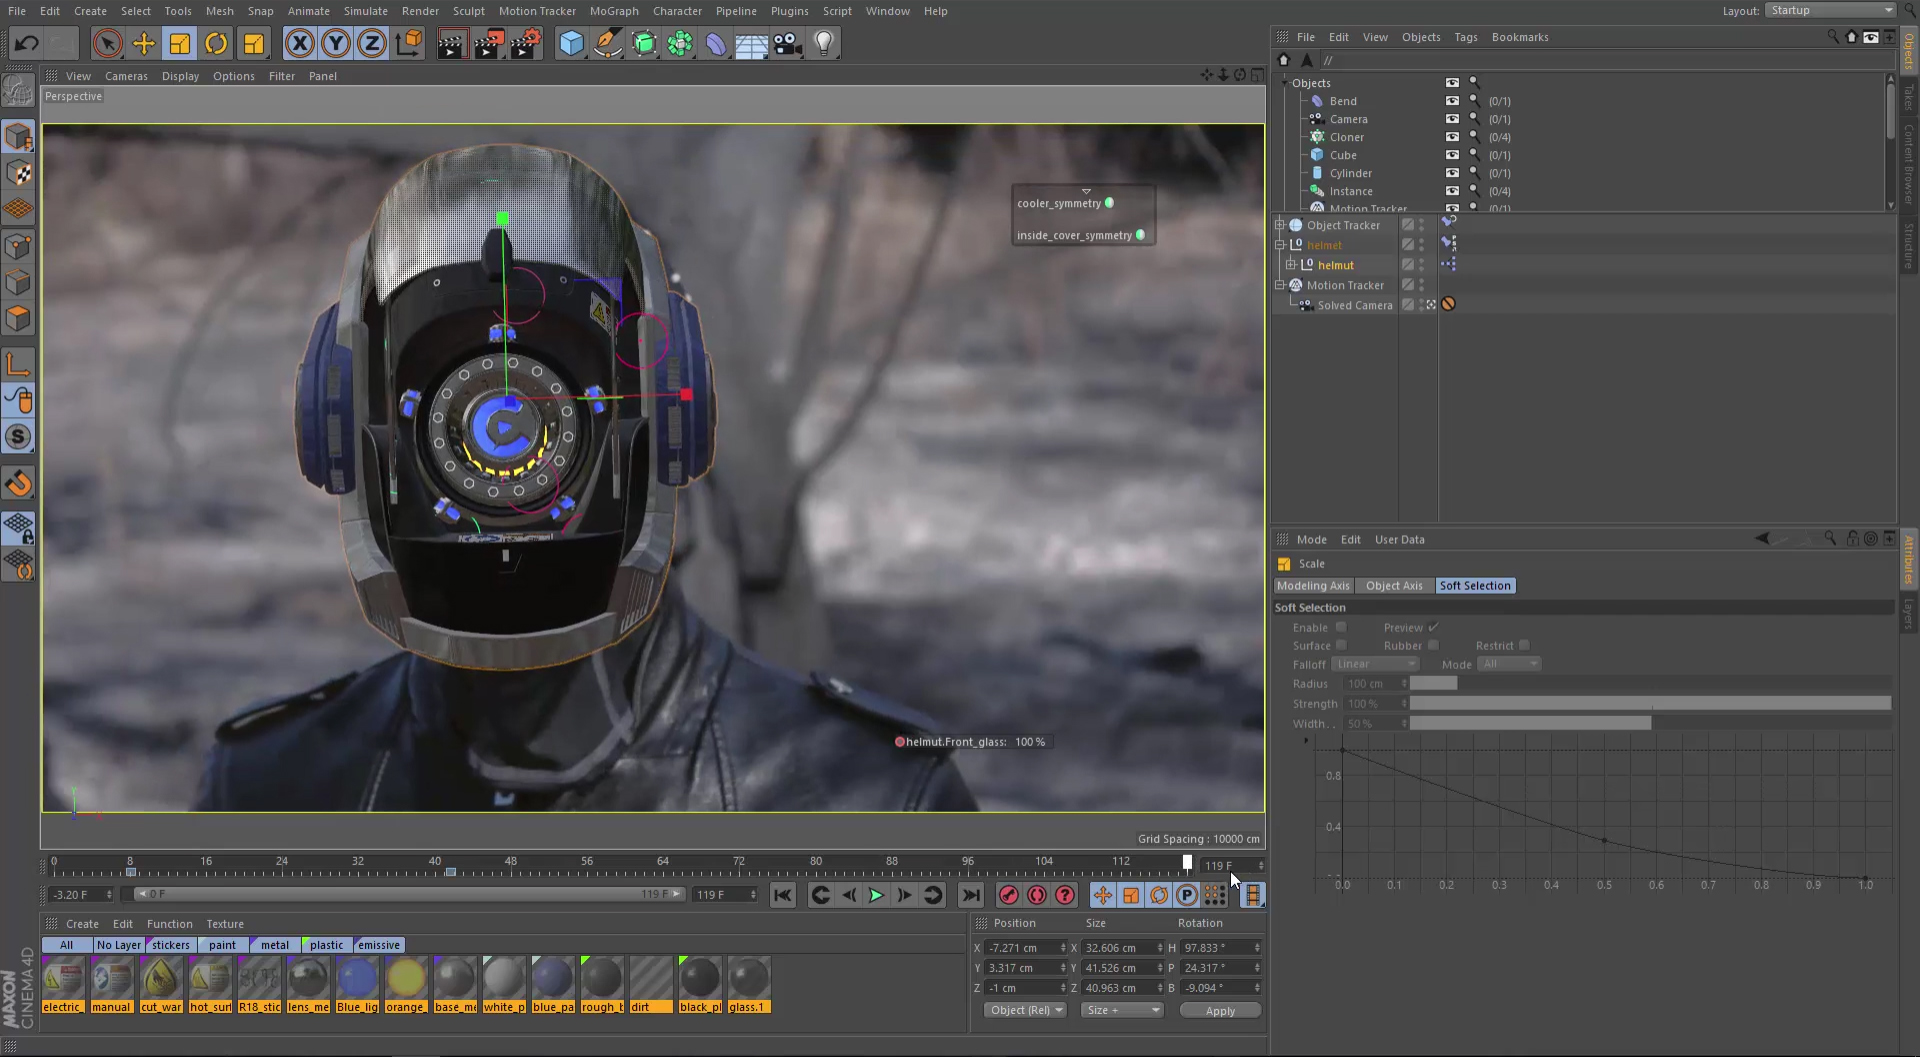 Along with camera tracking, object tracking has now been added to CINEMA 4D.